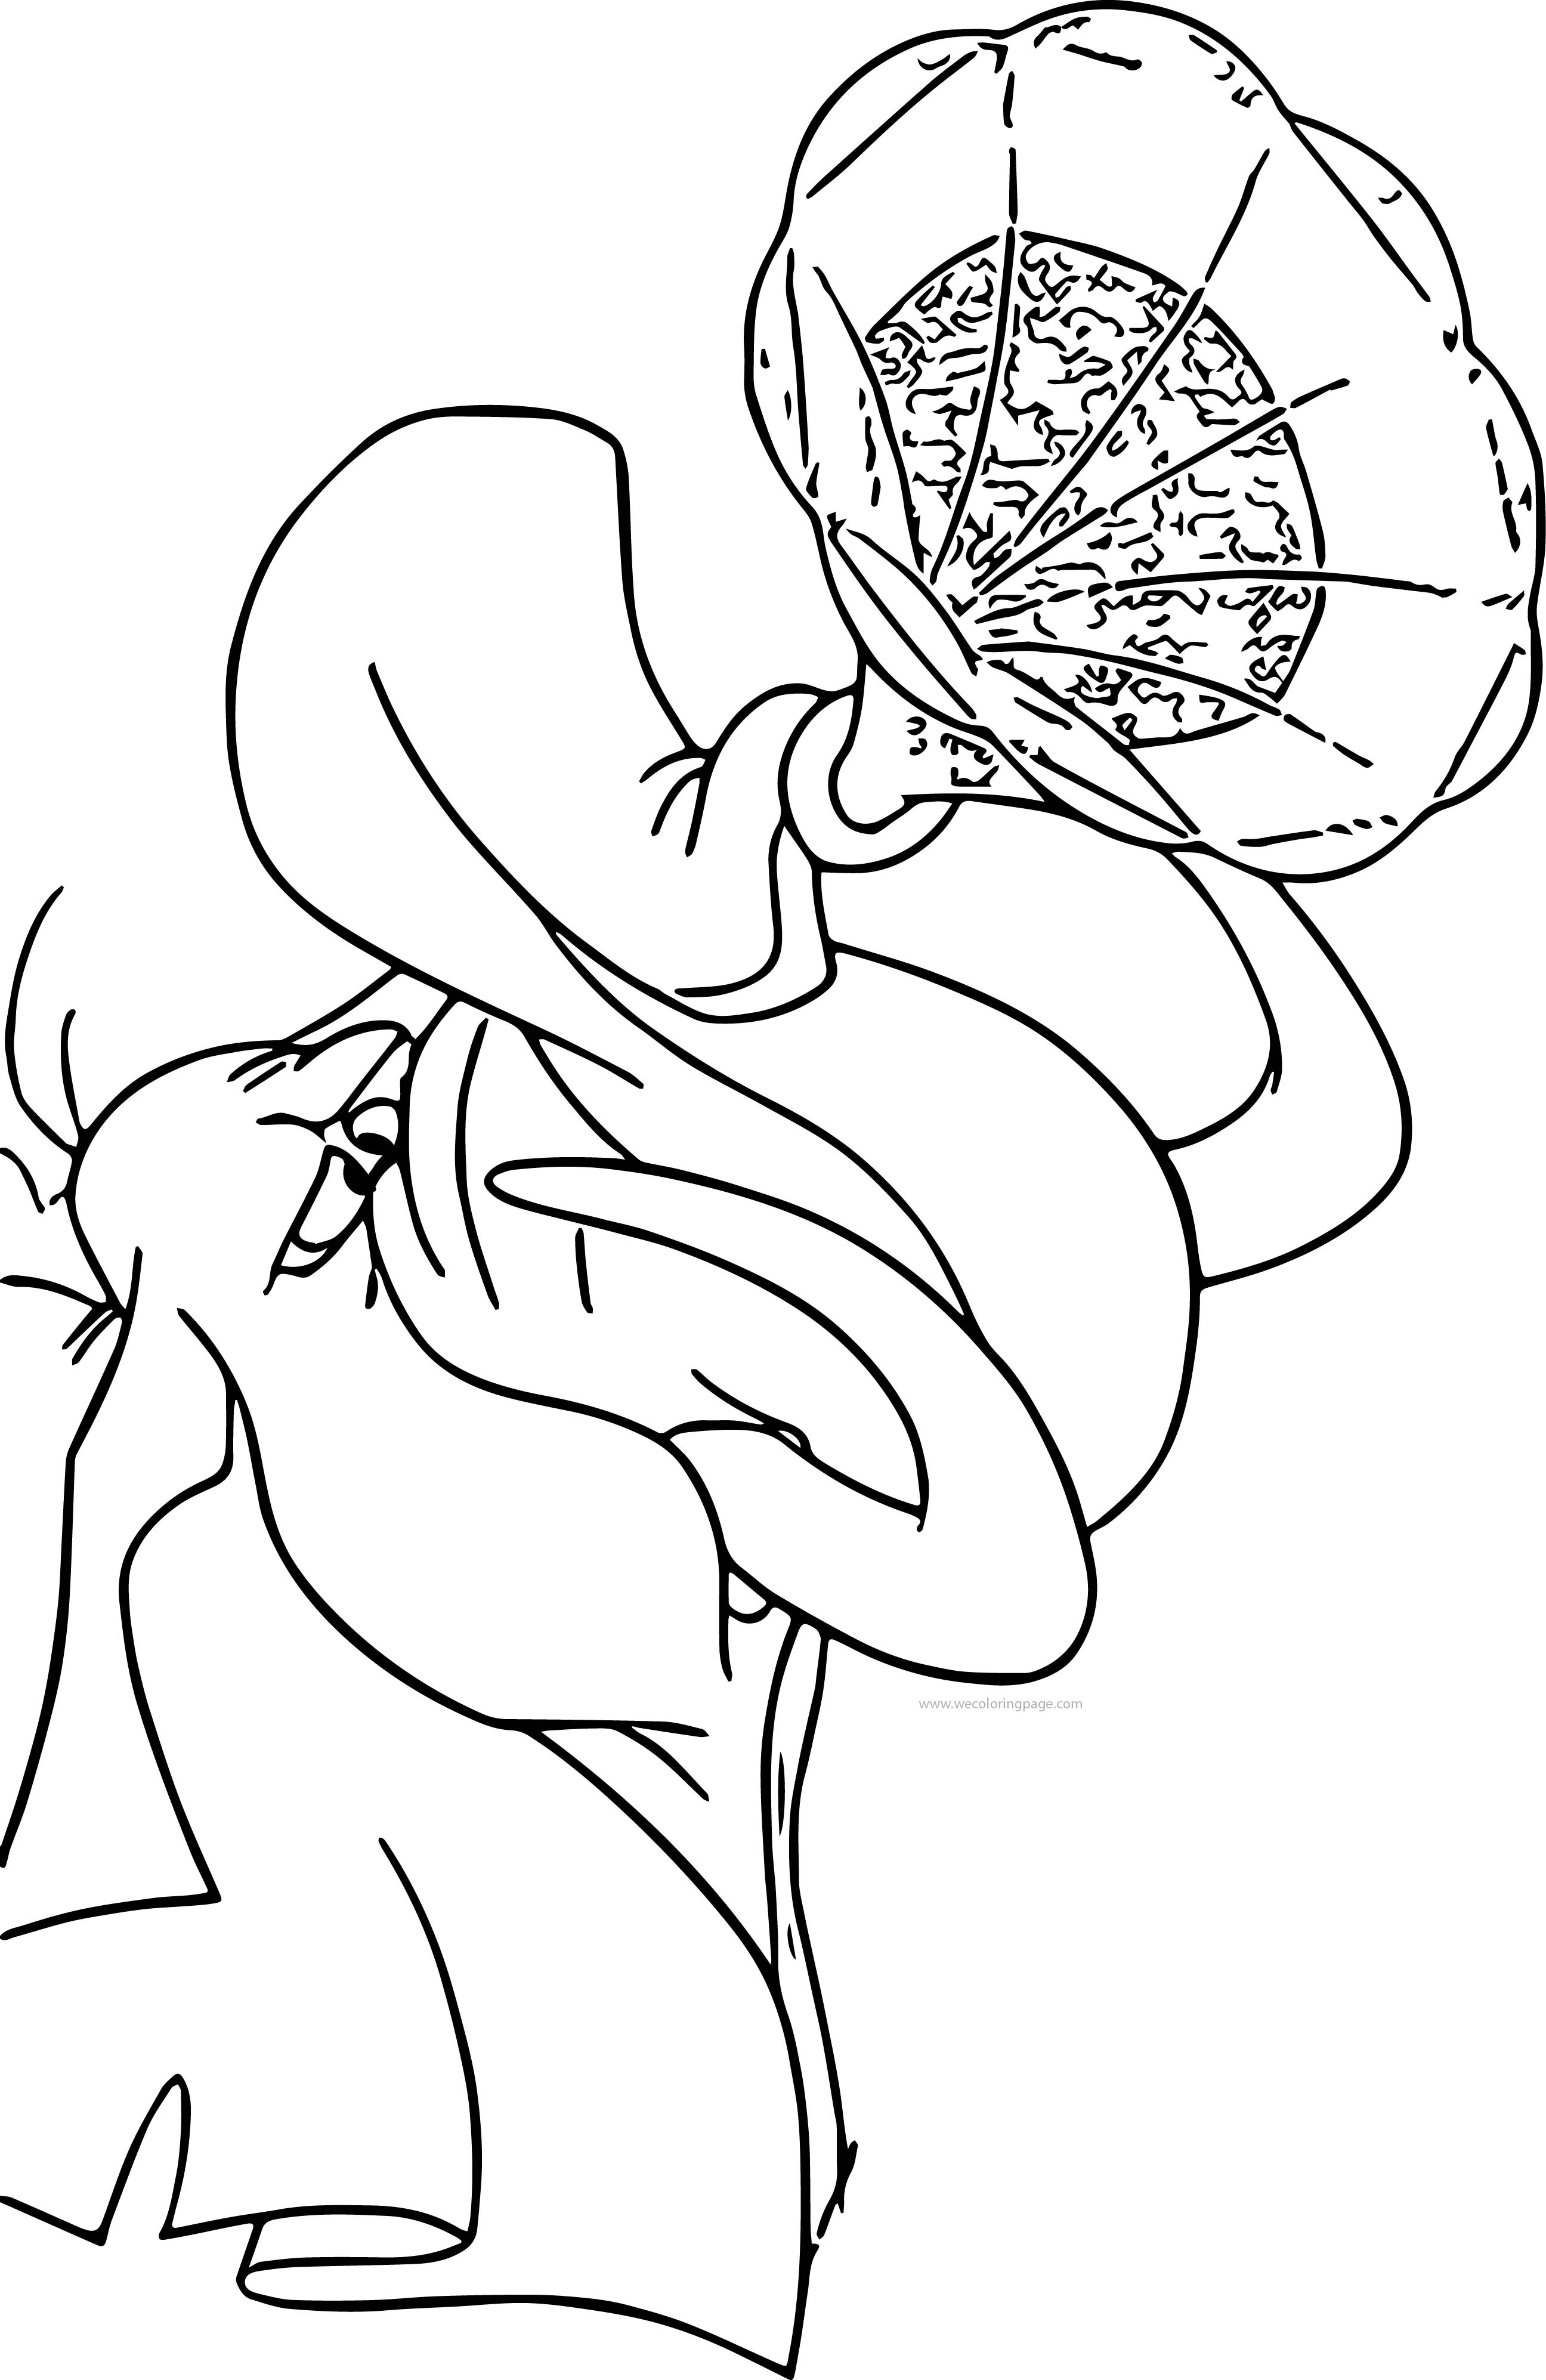 Tantor Music Coloring Page